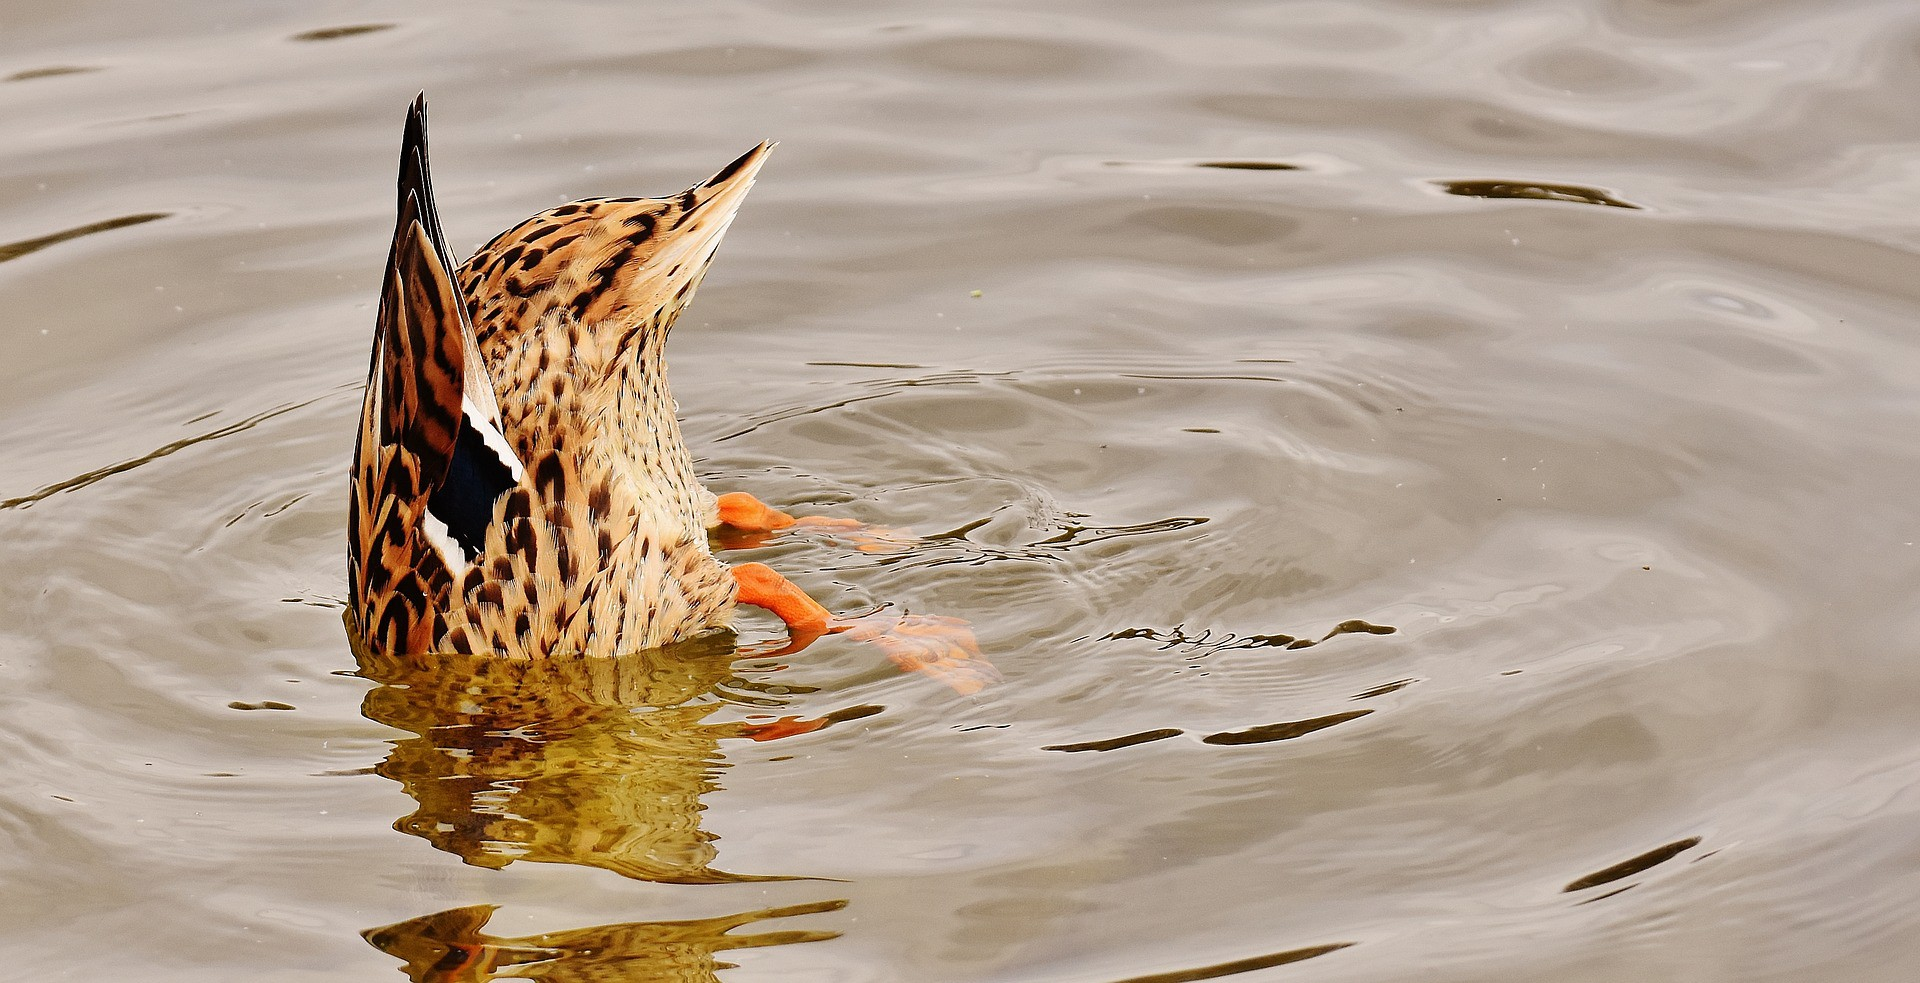 The tail end of a diving duck sticks out of the water, with orange feet visible under the water, keeping her upended.